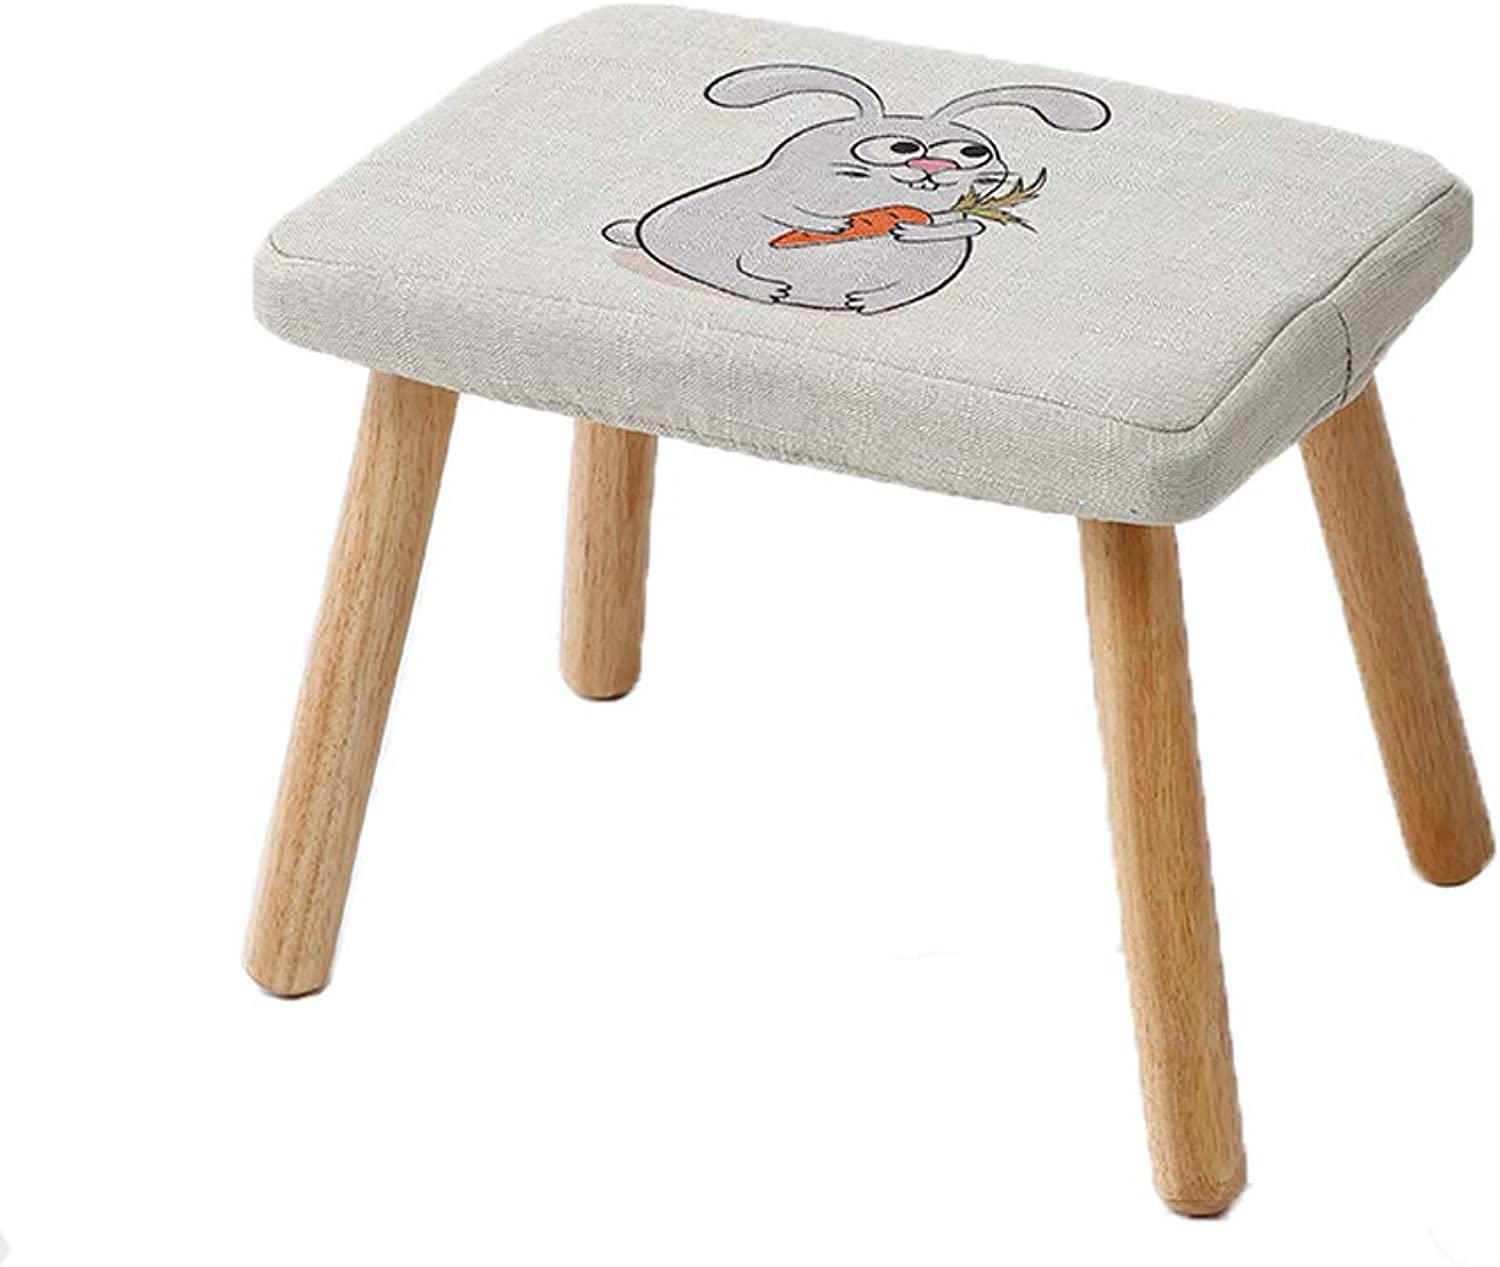 HLJ Simple Fashion Sofa Stool Personality Adult Change shoes Bench Creative Cartoon Small Bench Solid Wood Household Tea Table Stool